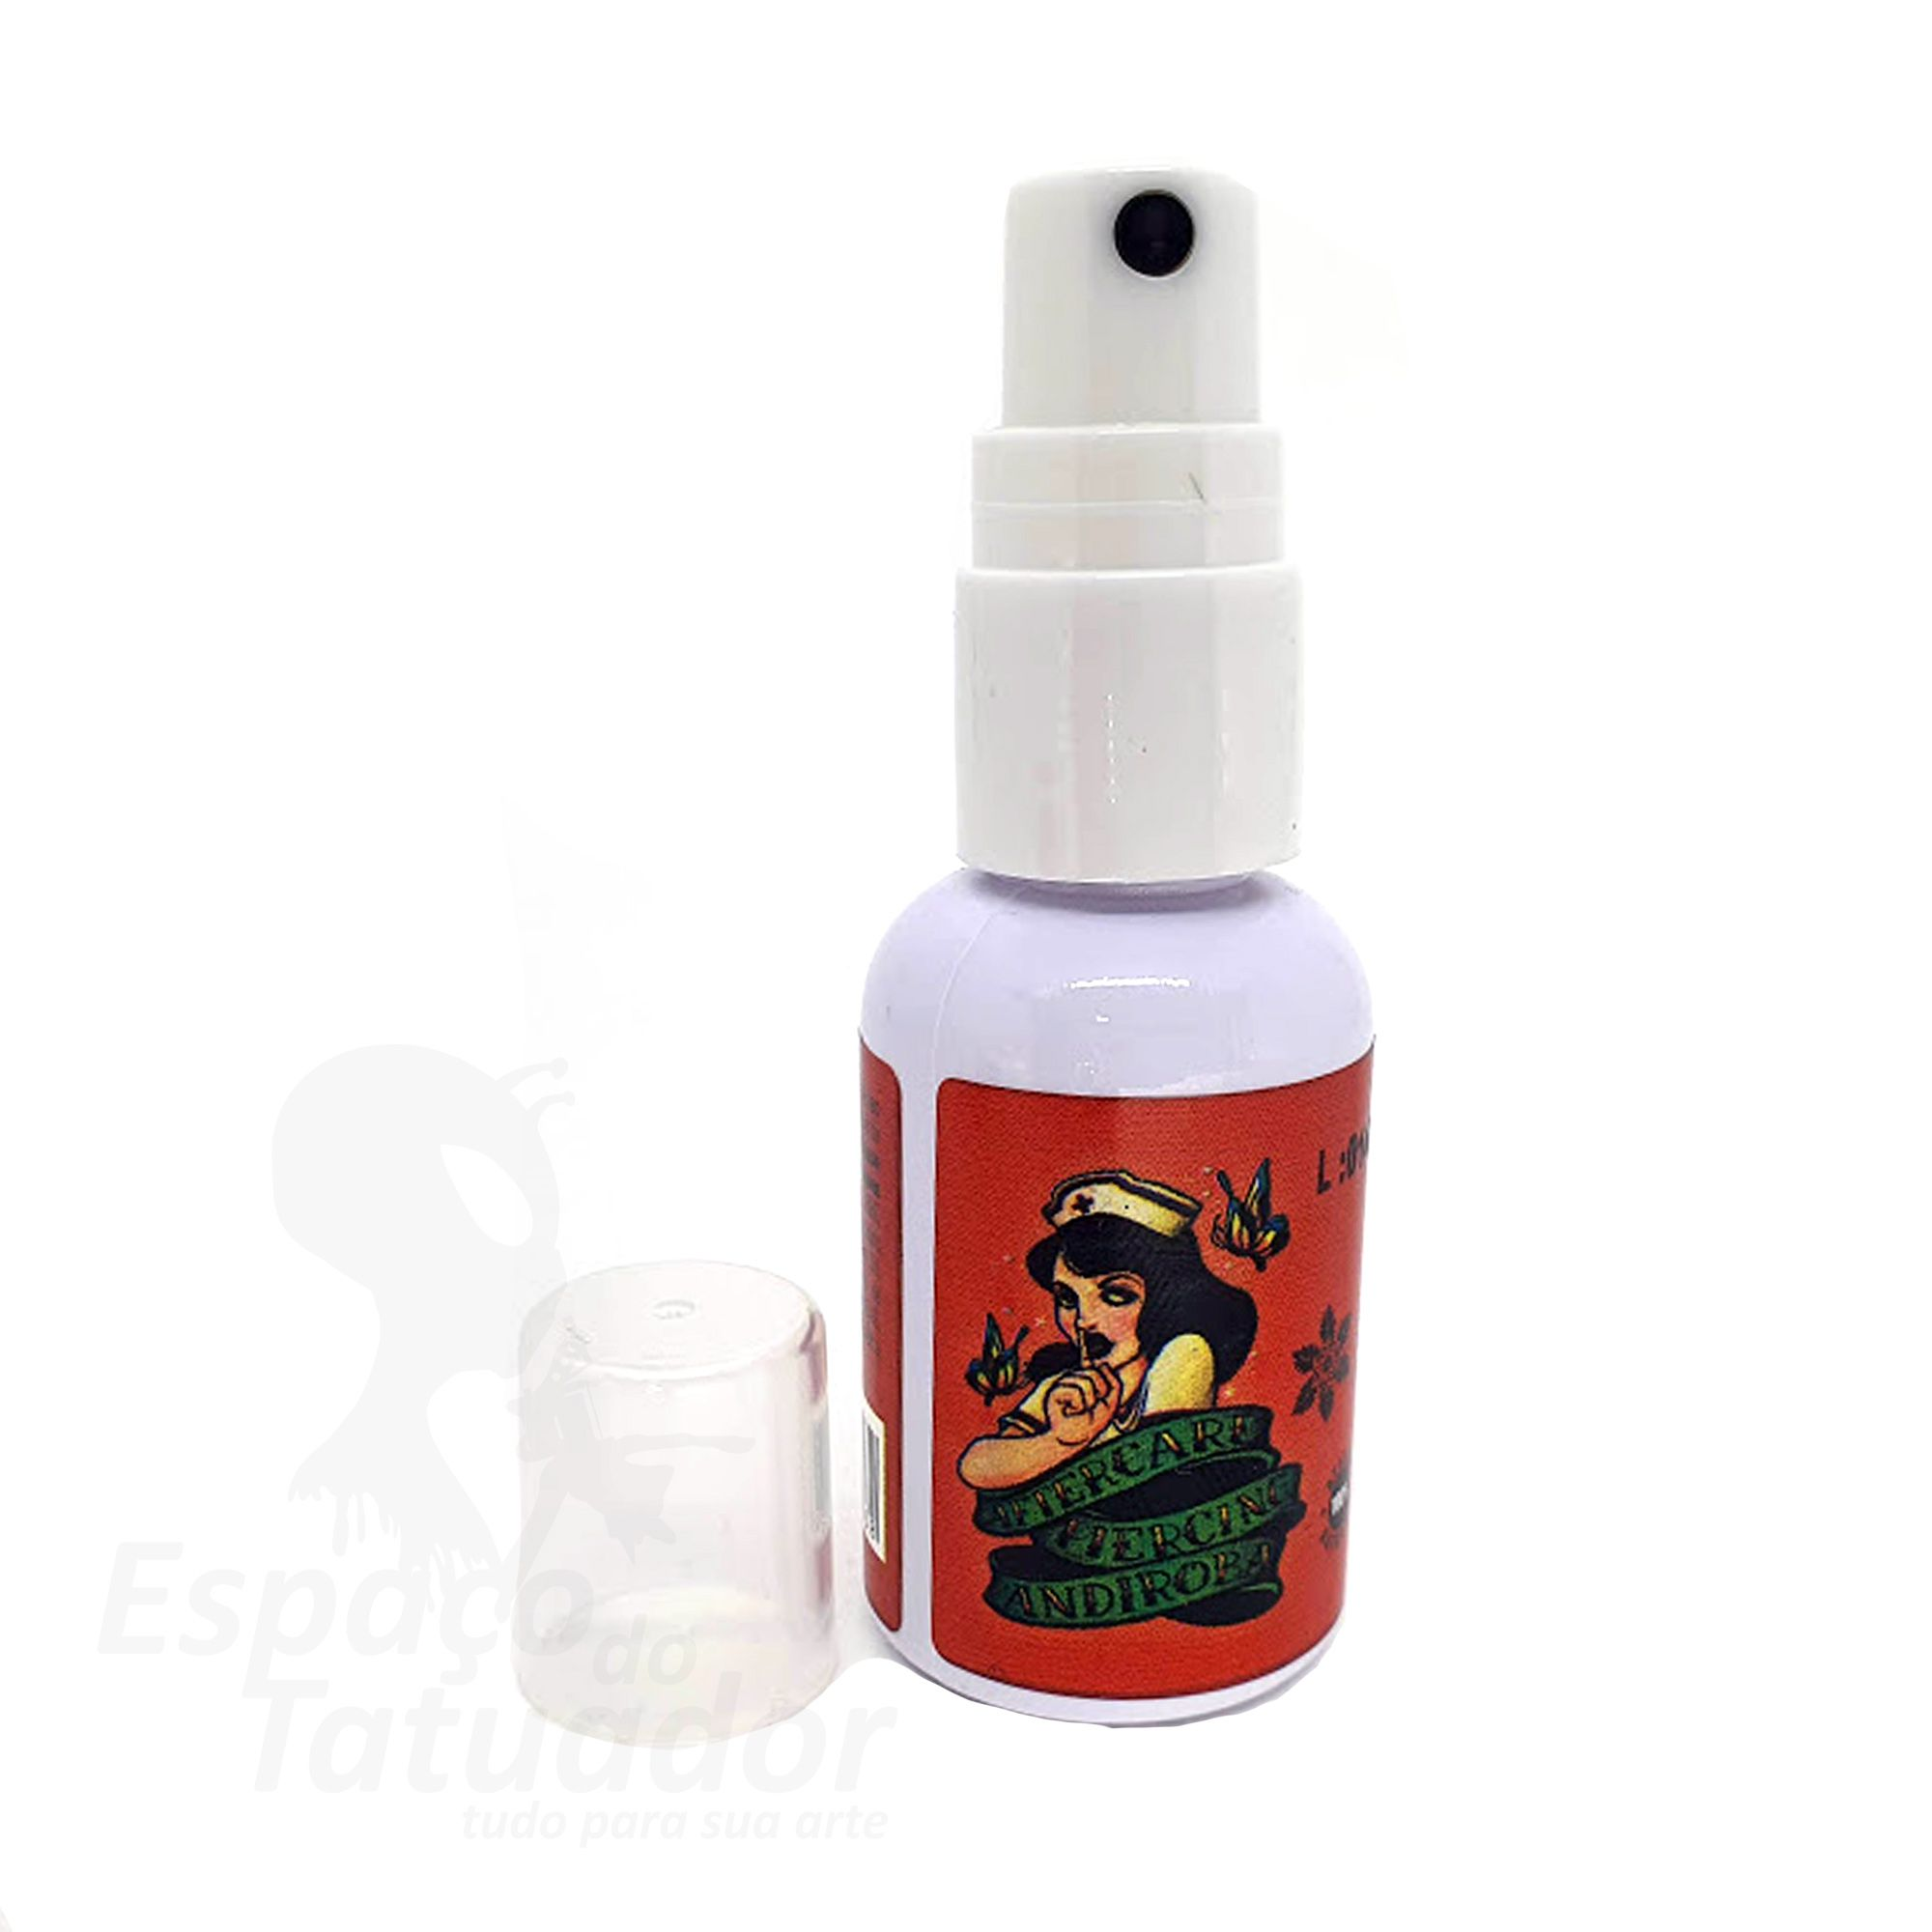 Aftercare Andiroba Spray 30ml